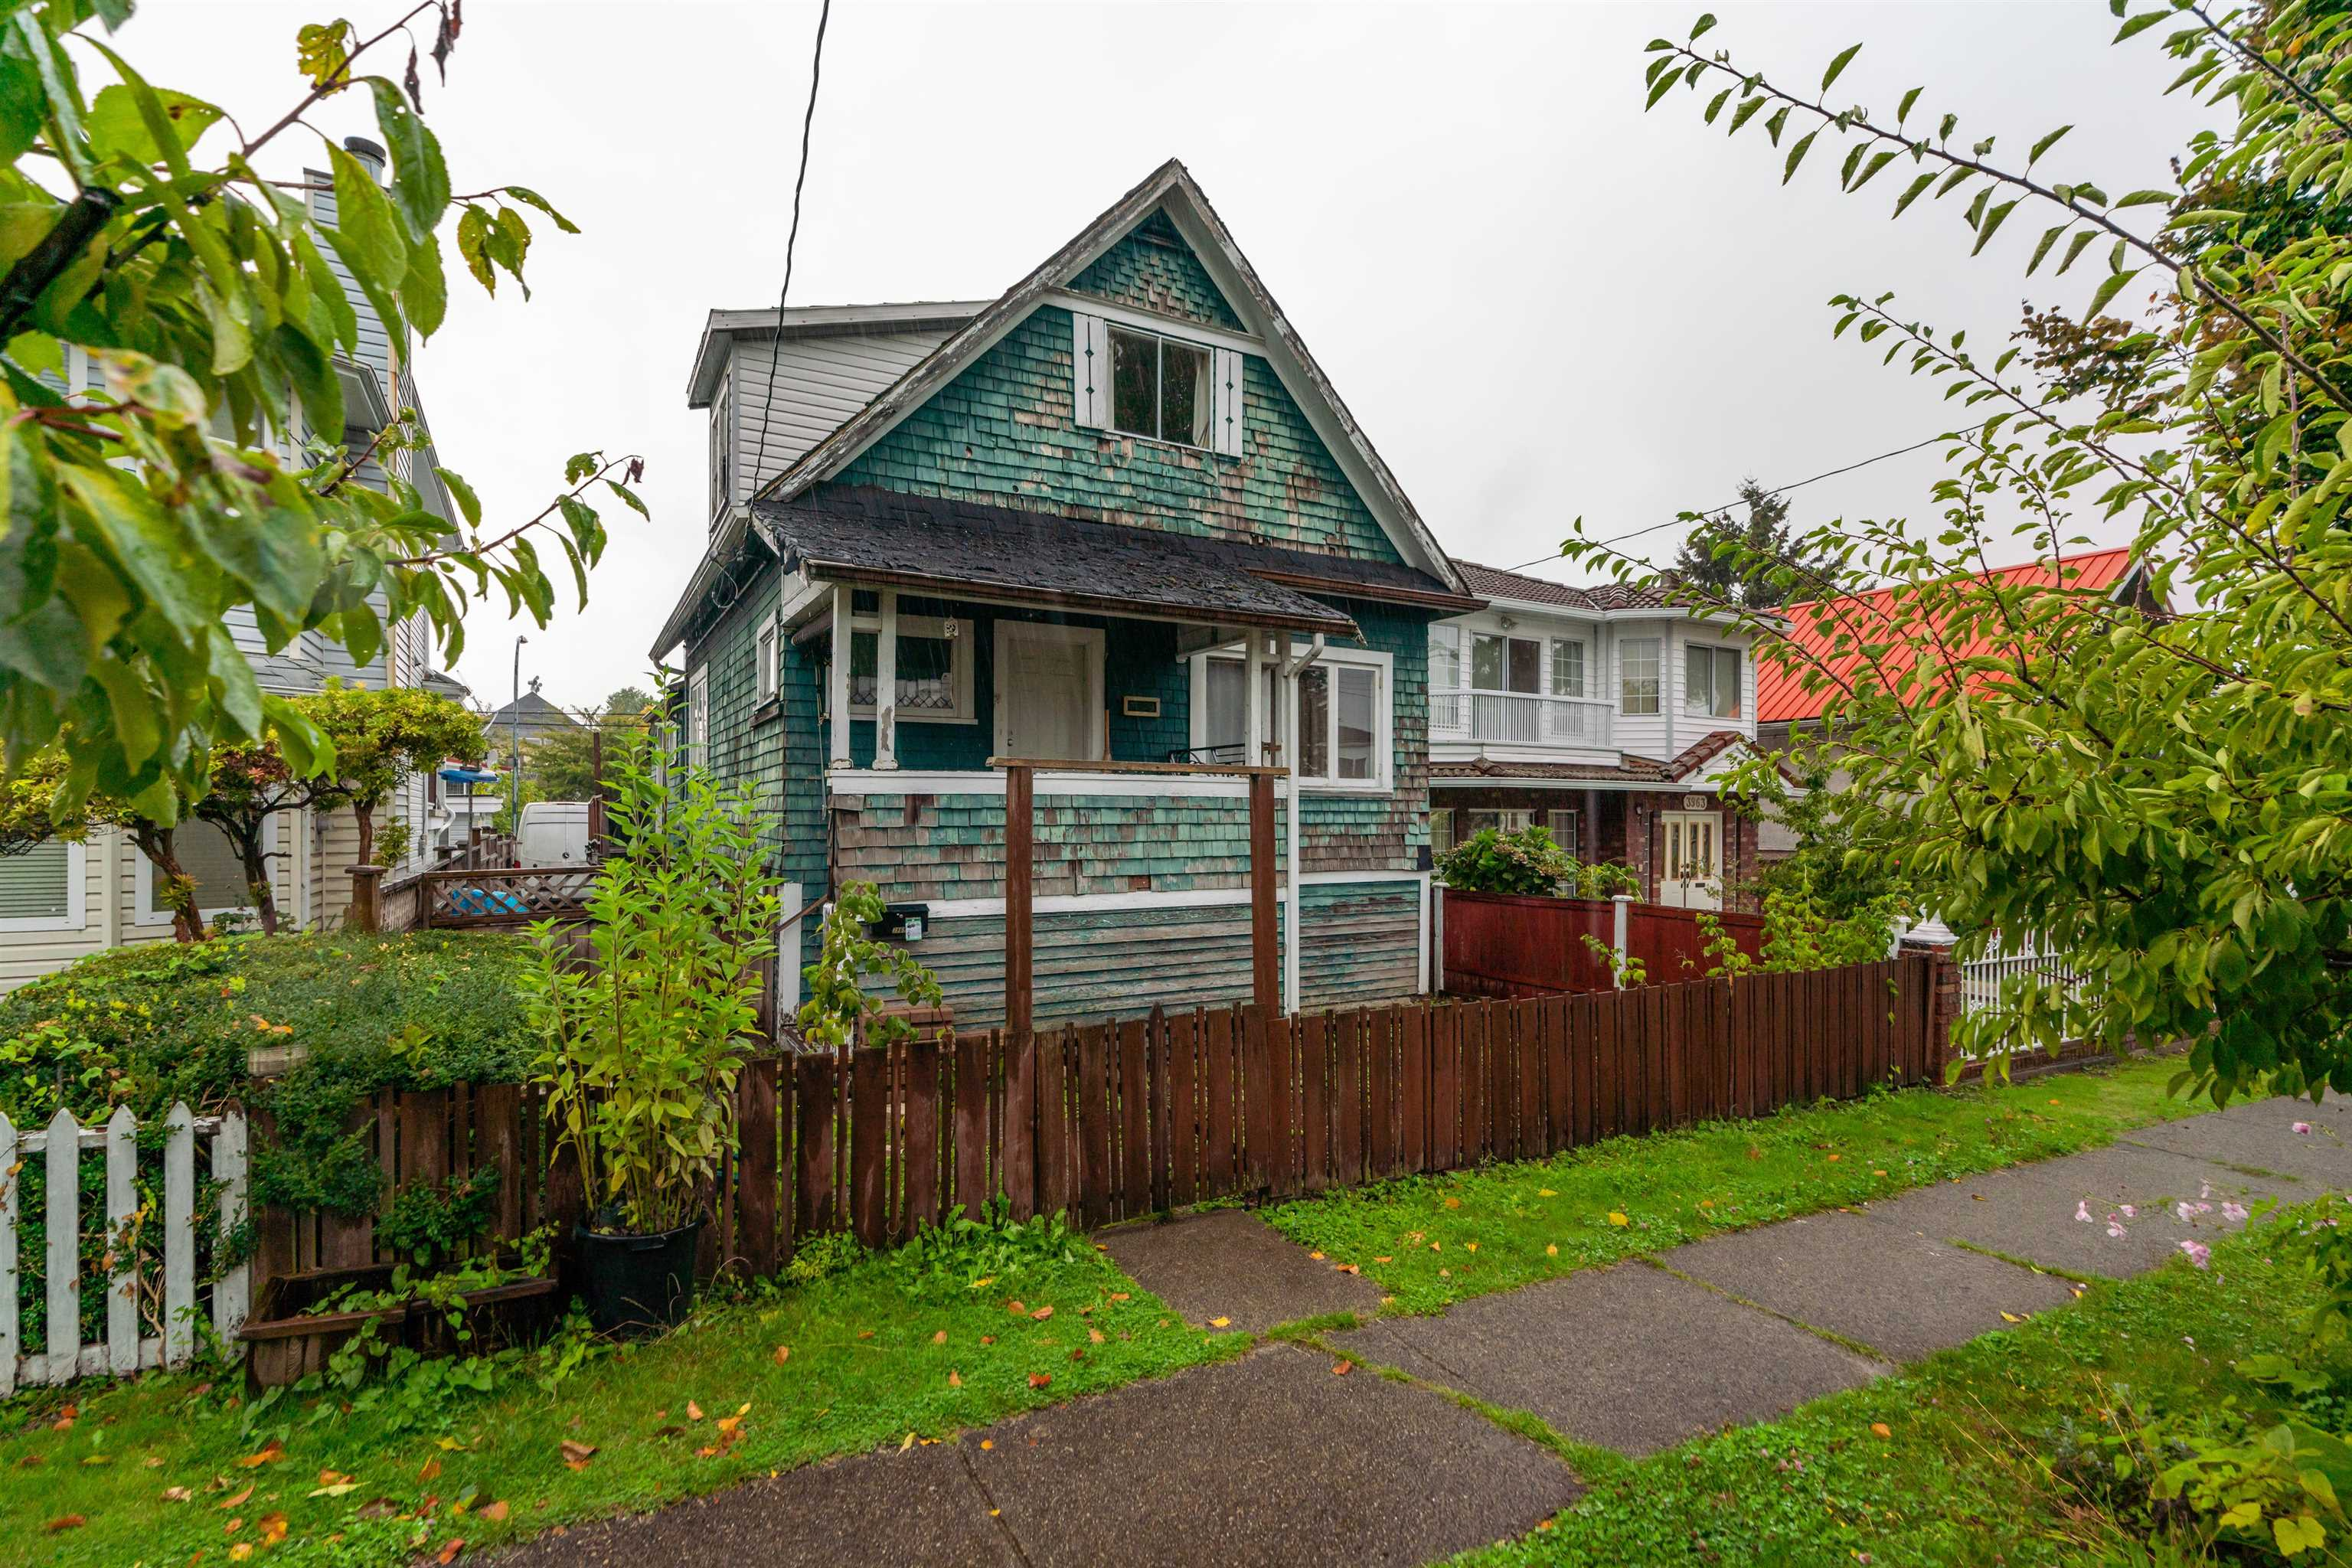 3969 ALICE STREET - Victoria VE House/Single Family for sale, 4 Bedrooms (R2621293) - #1